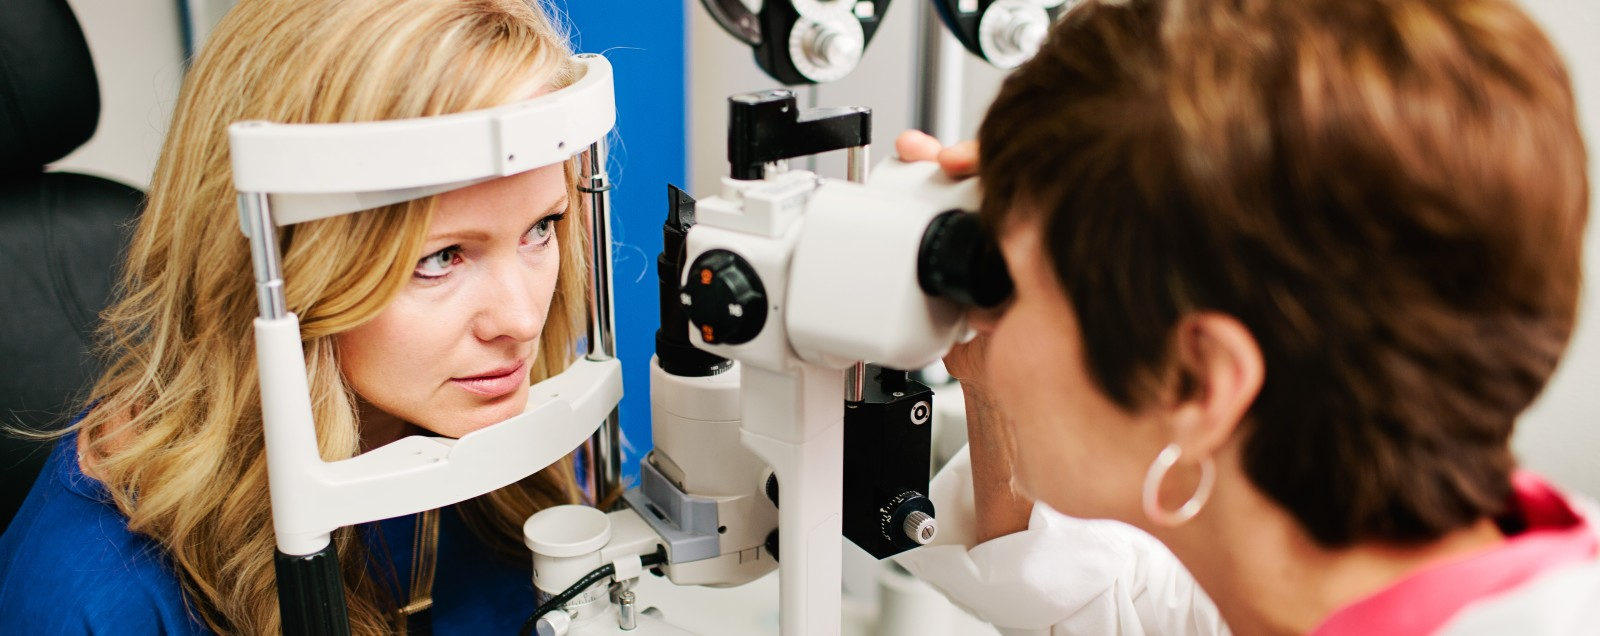 optometrist lease in king nc walmart careers